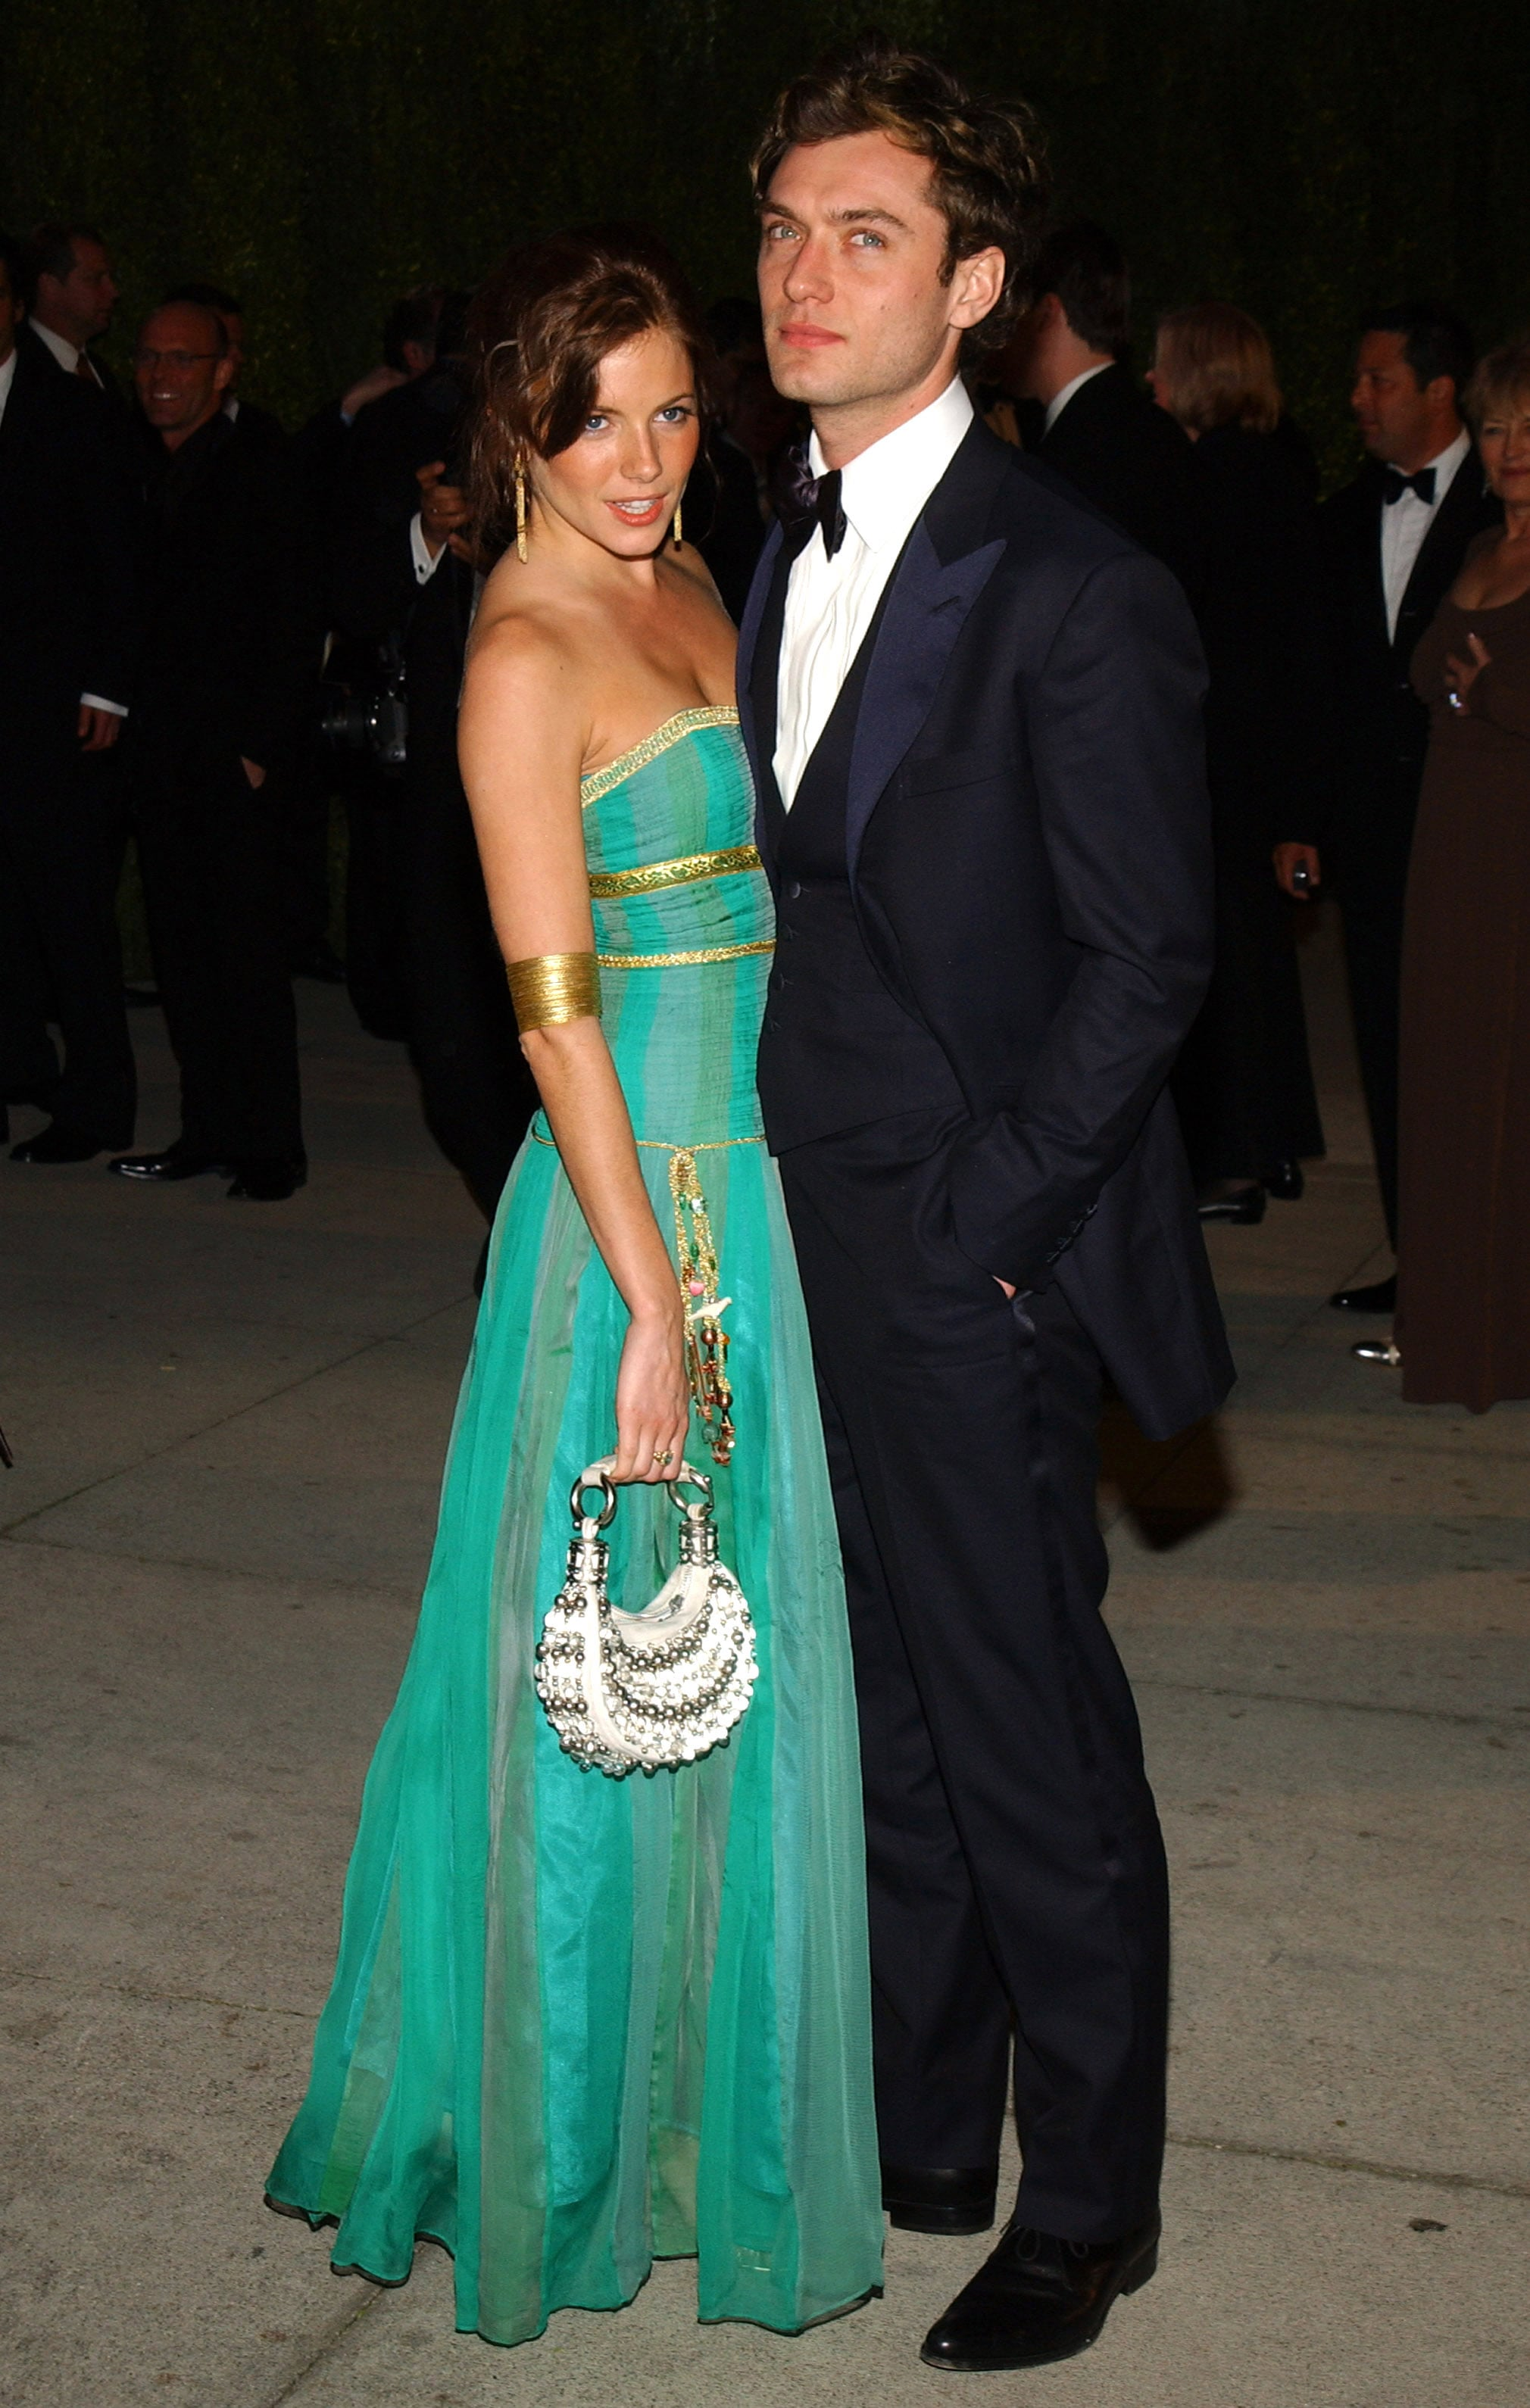 She stunned the crowd with Jude on her arm at the 2004 Vanity Fair Oscars party.